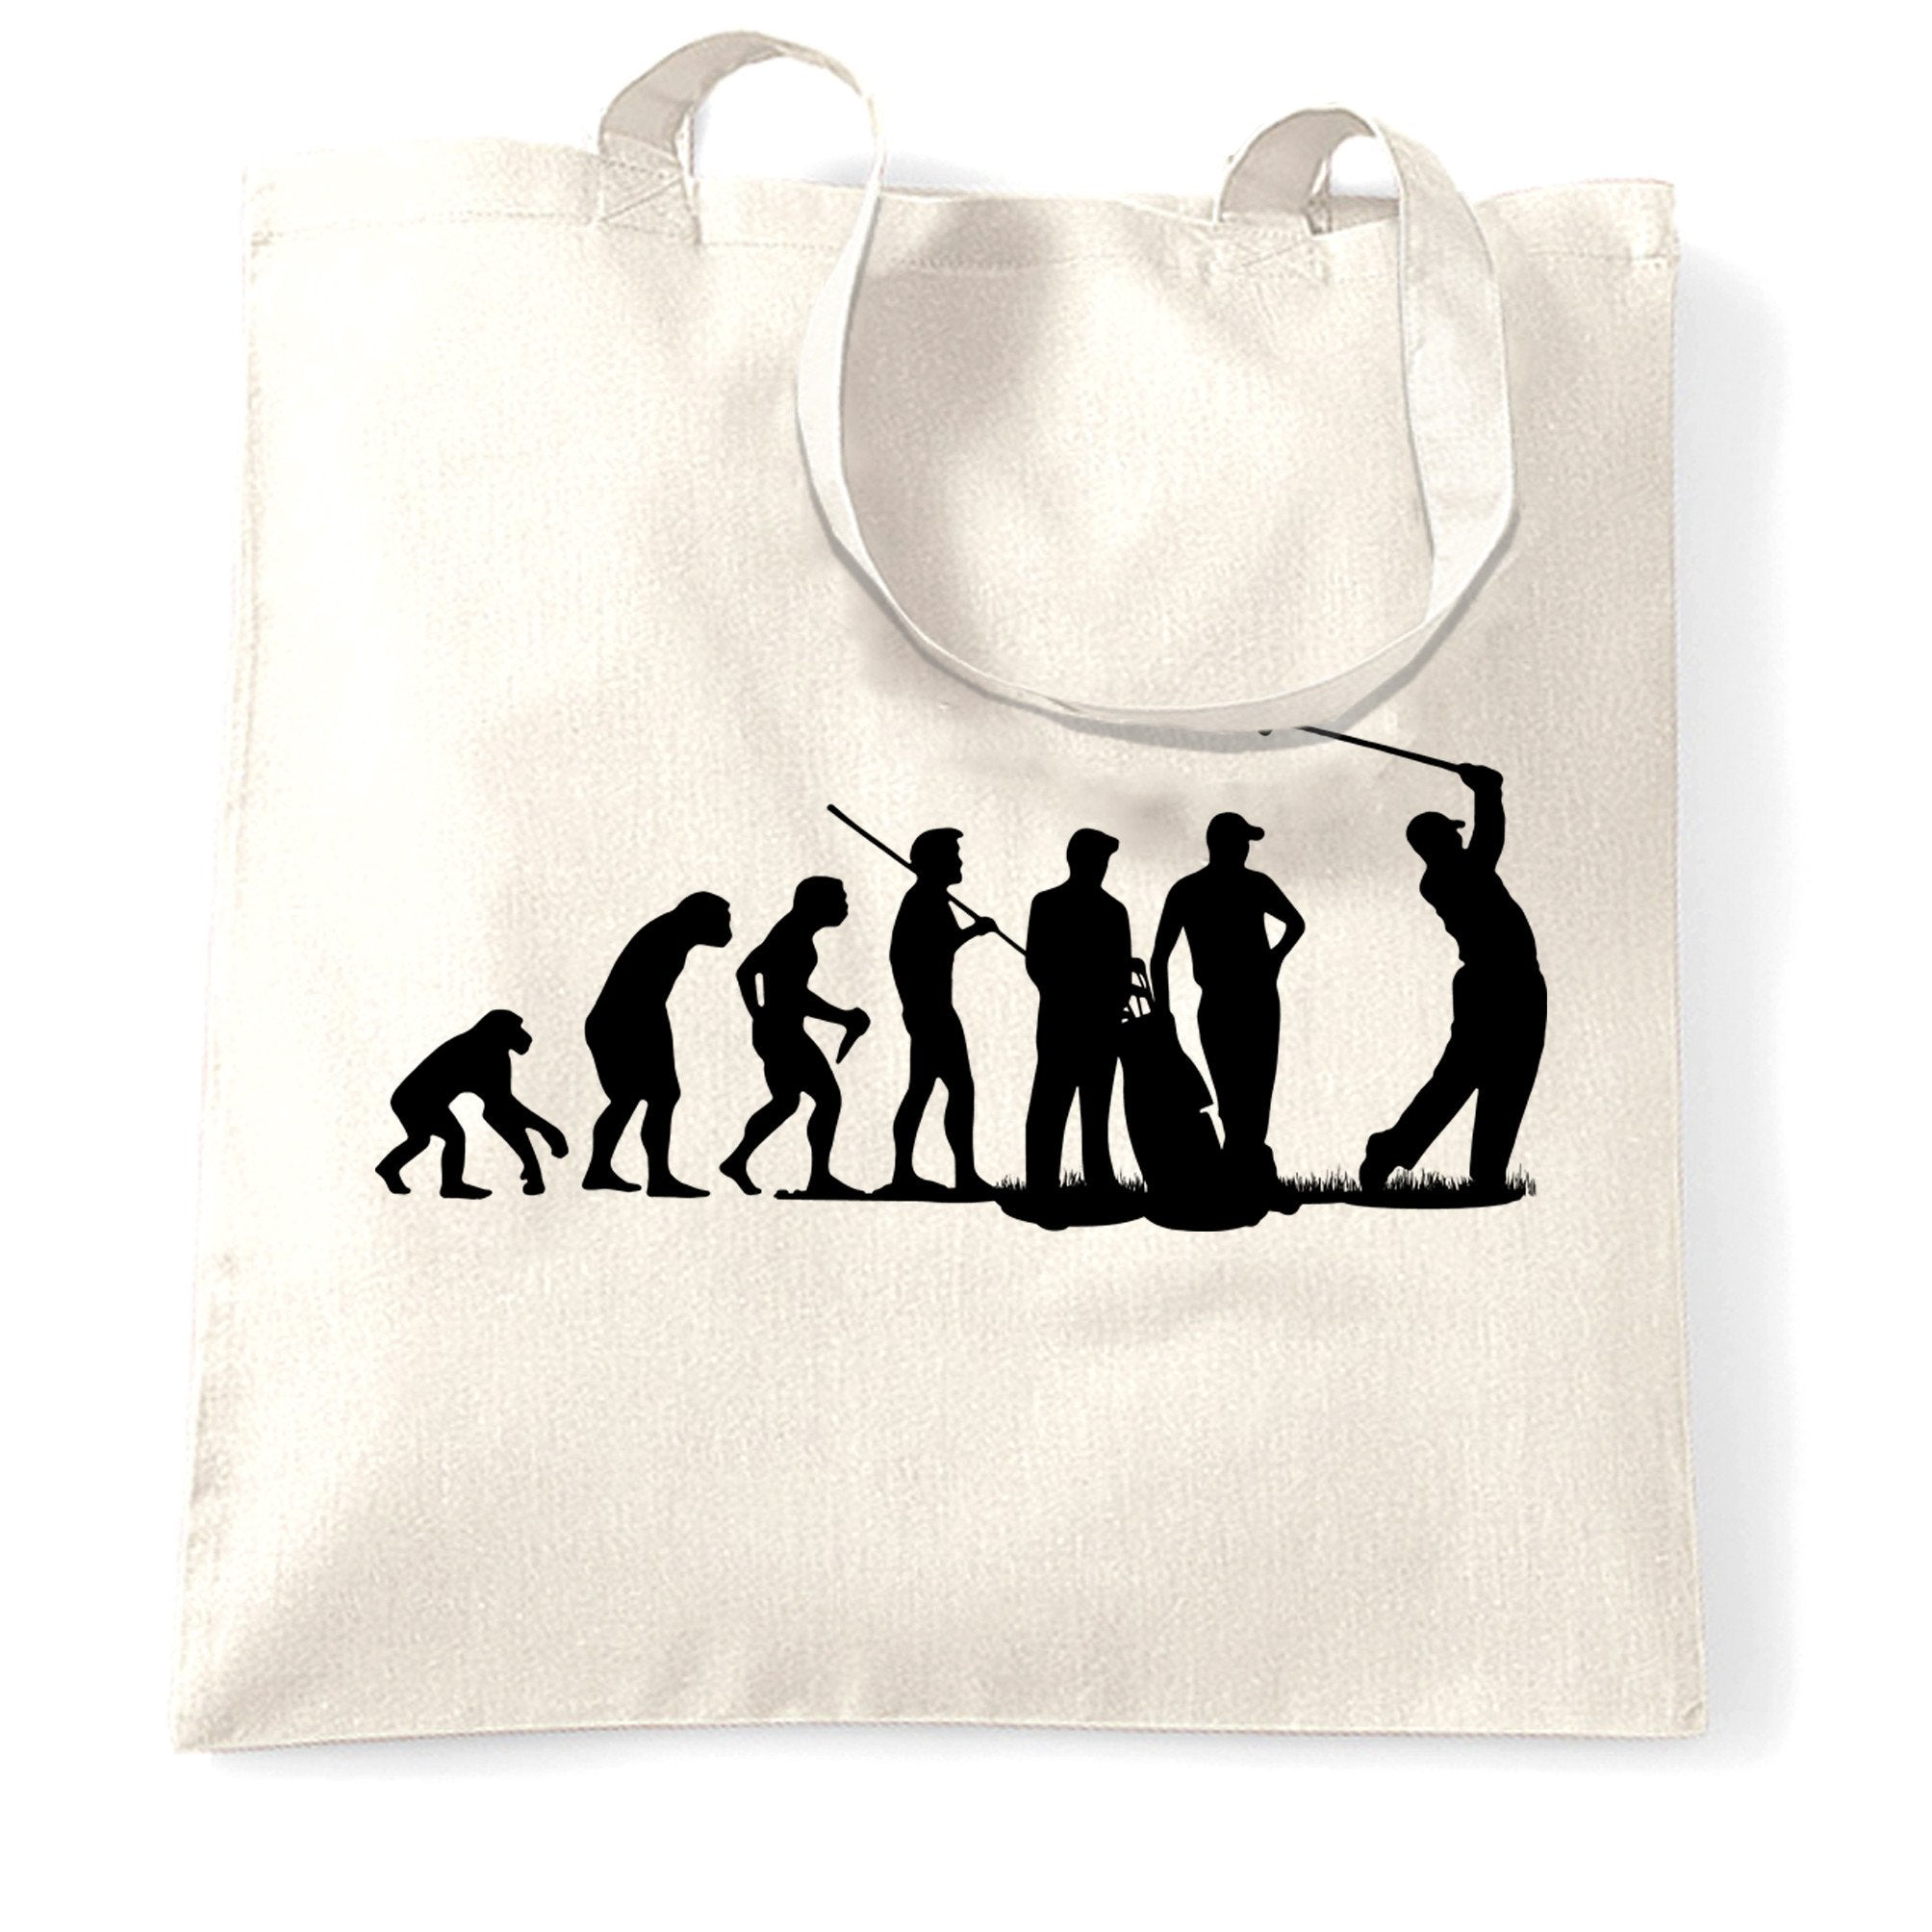 Sports Tote Bag The Evolution Of A Golfer